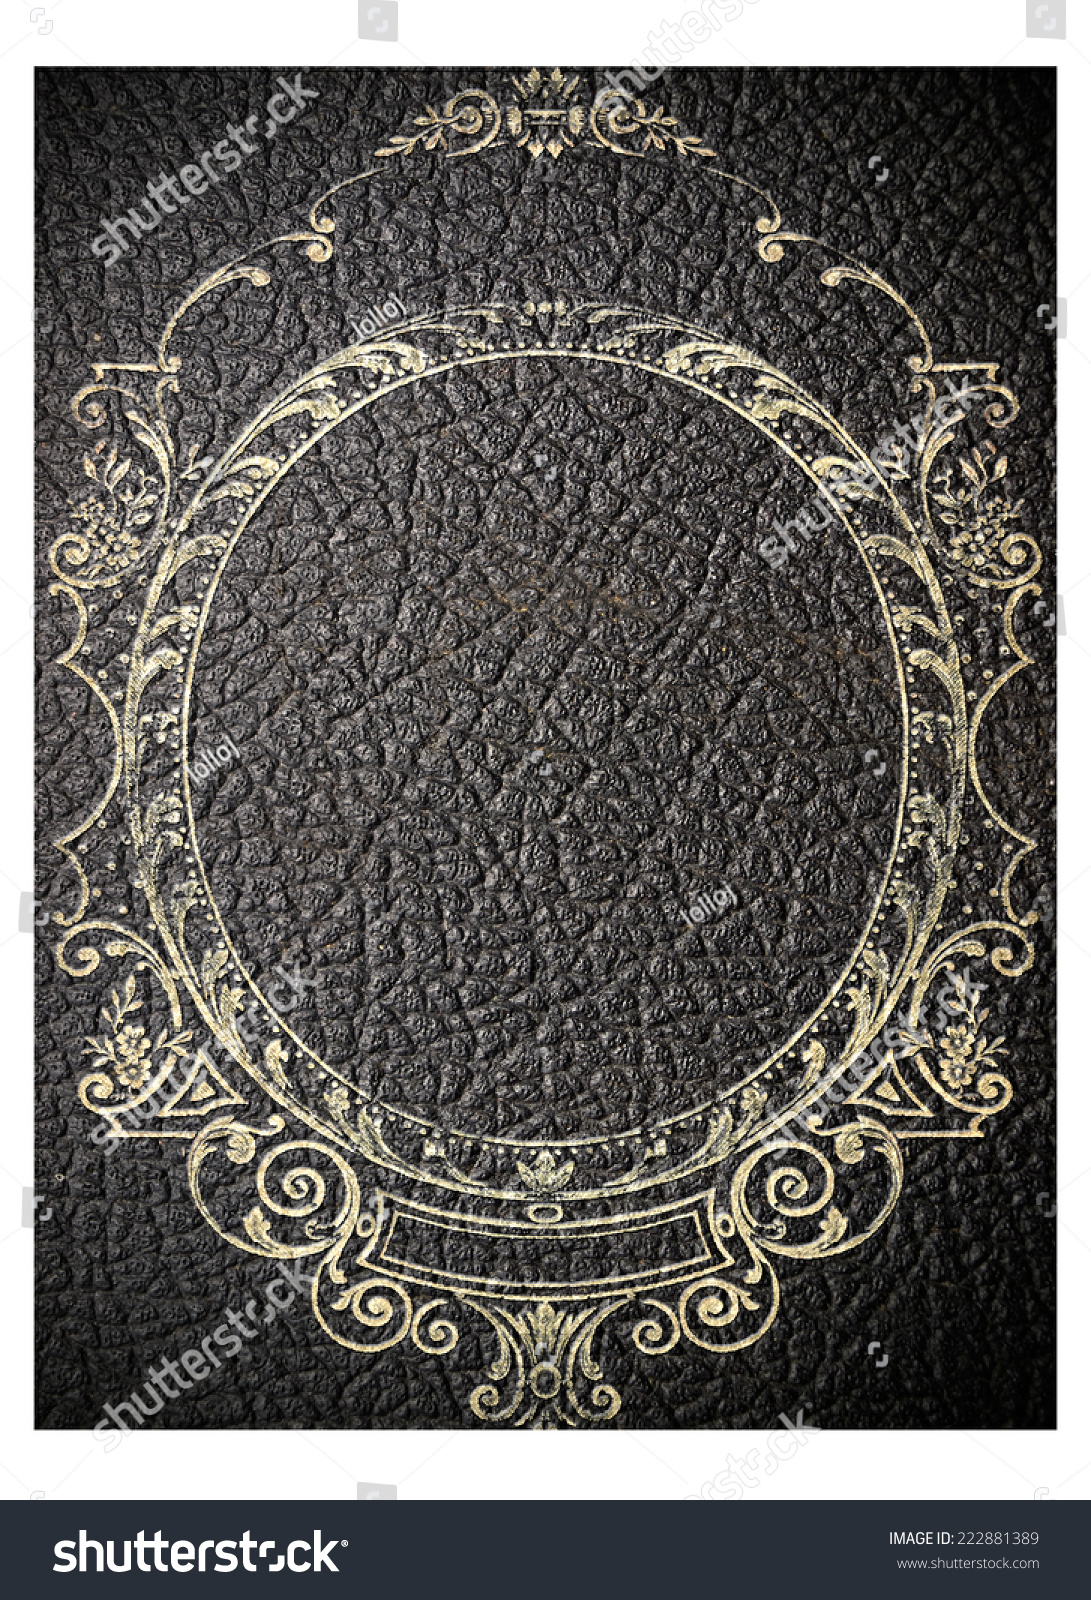 Black Leather Book Cover : Isolated old black leather book cover stock illustration